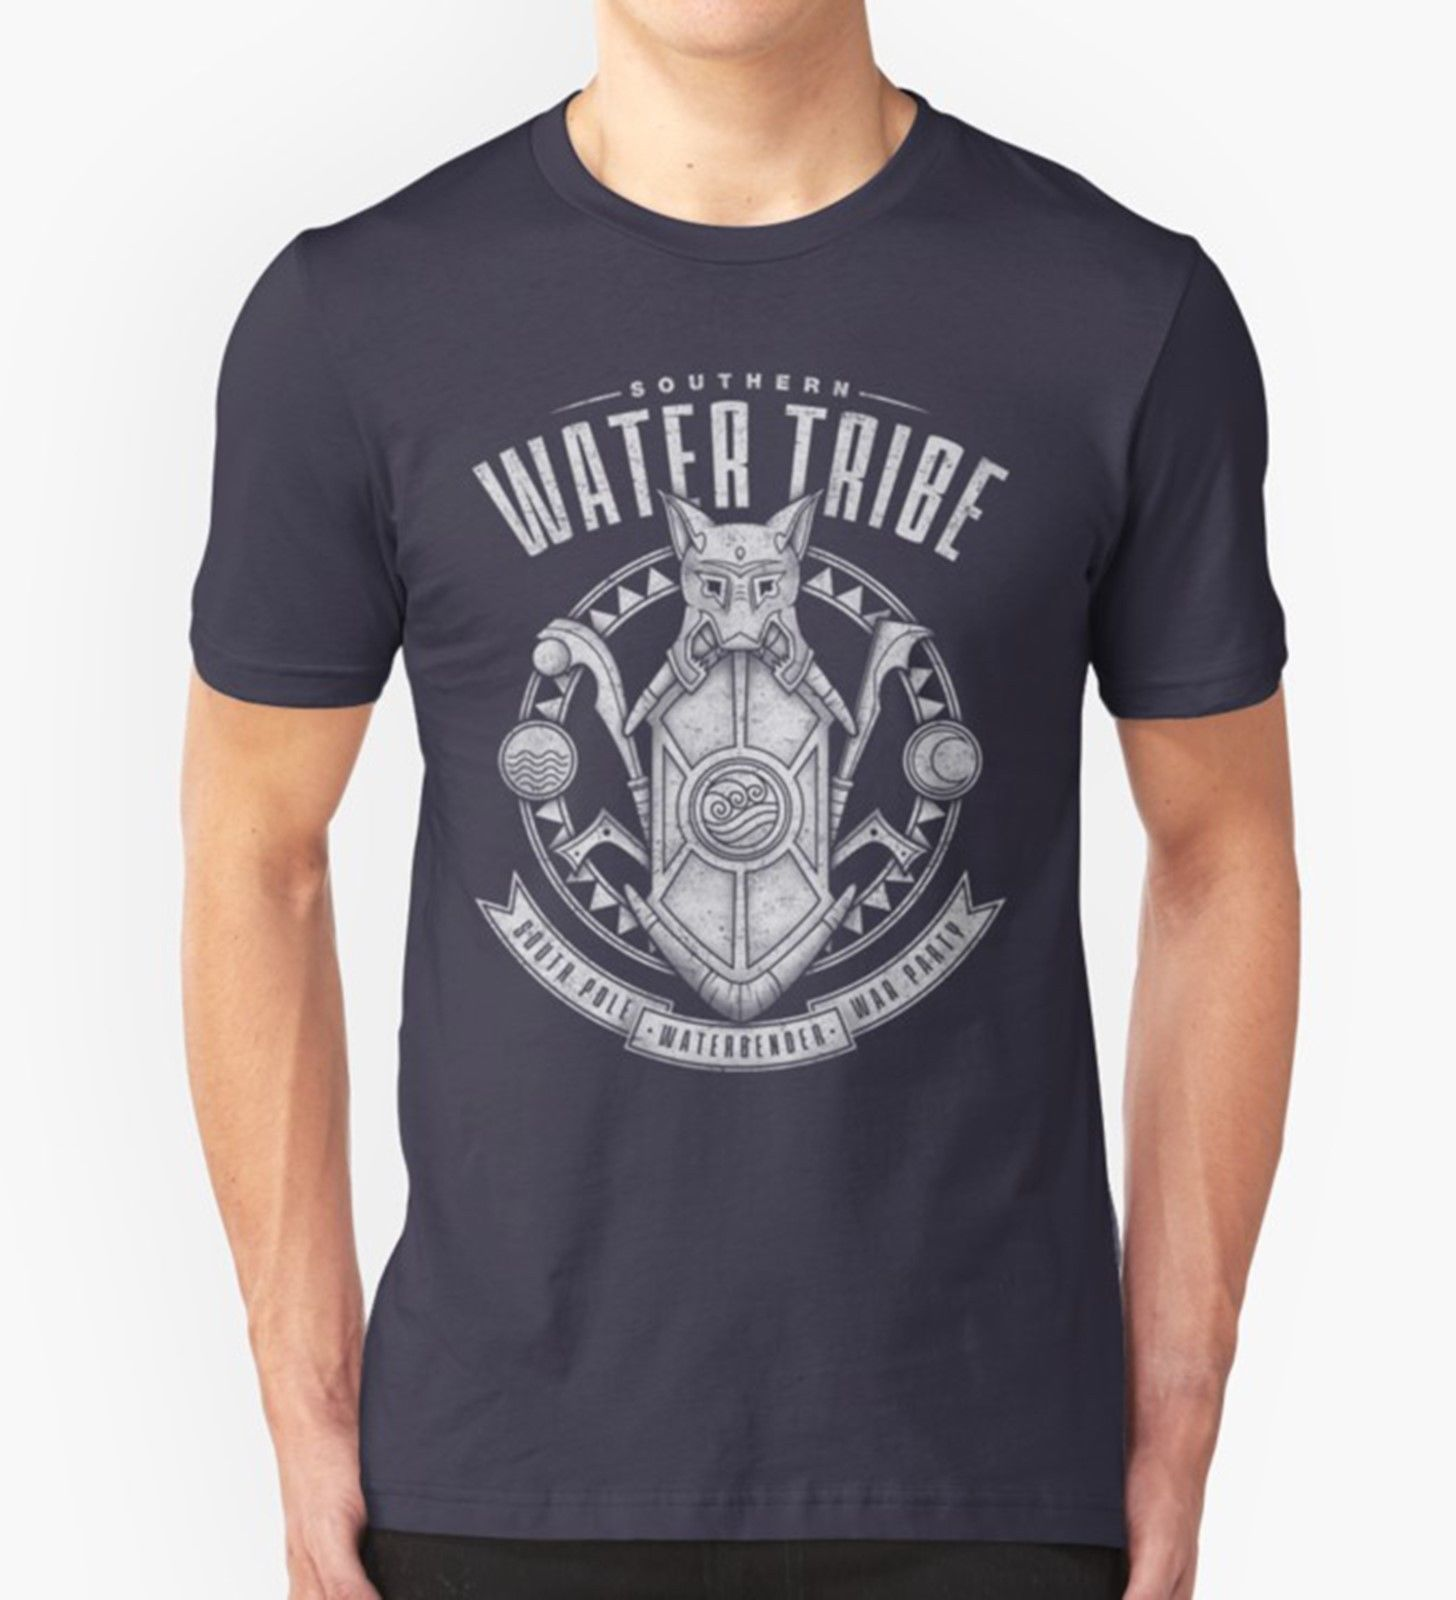 SOUTHERN WATER TRIBE T SHIRT SOUTH POLE